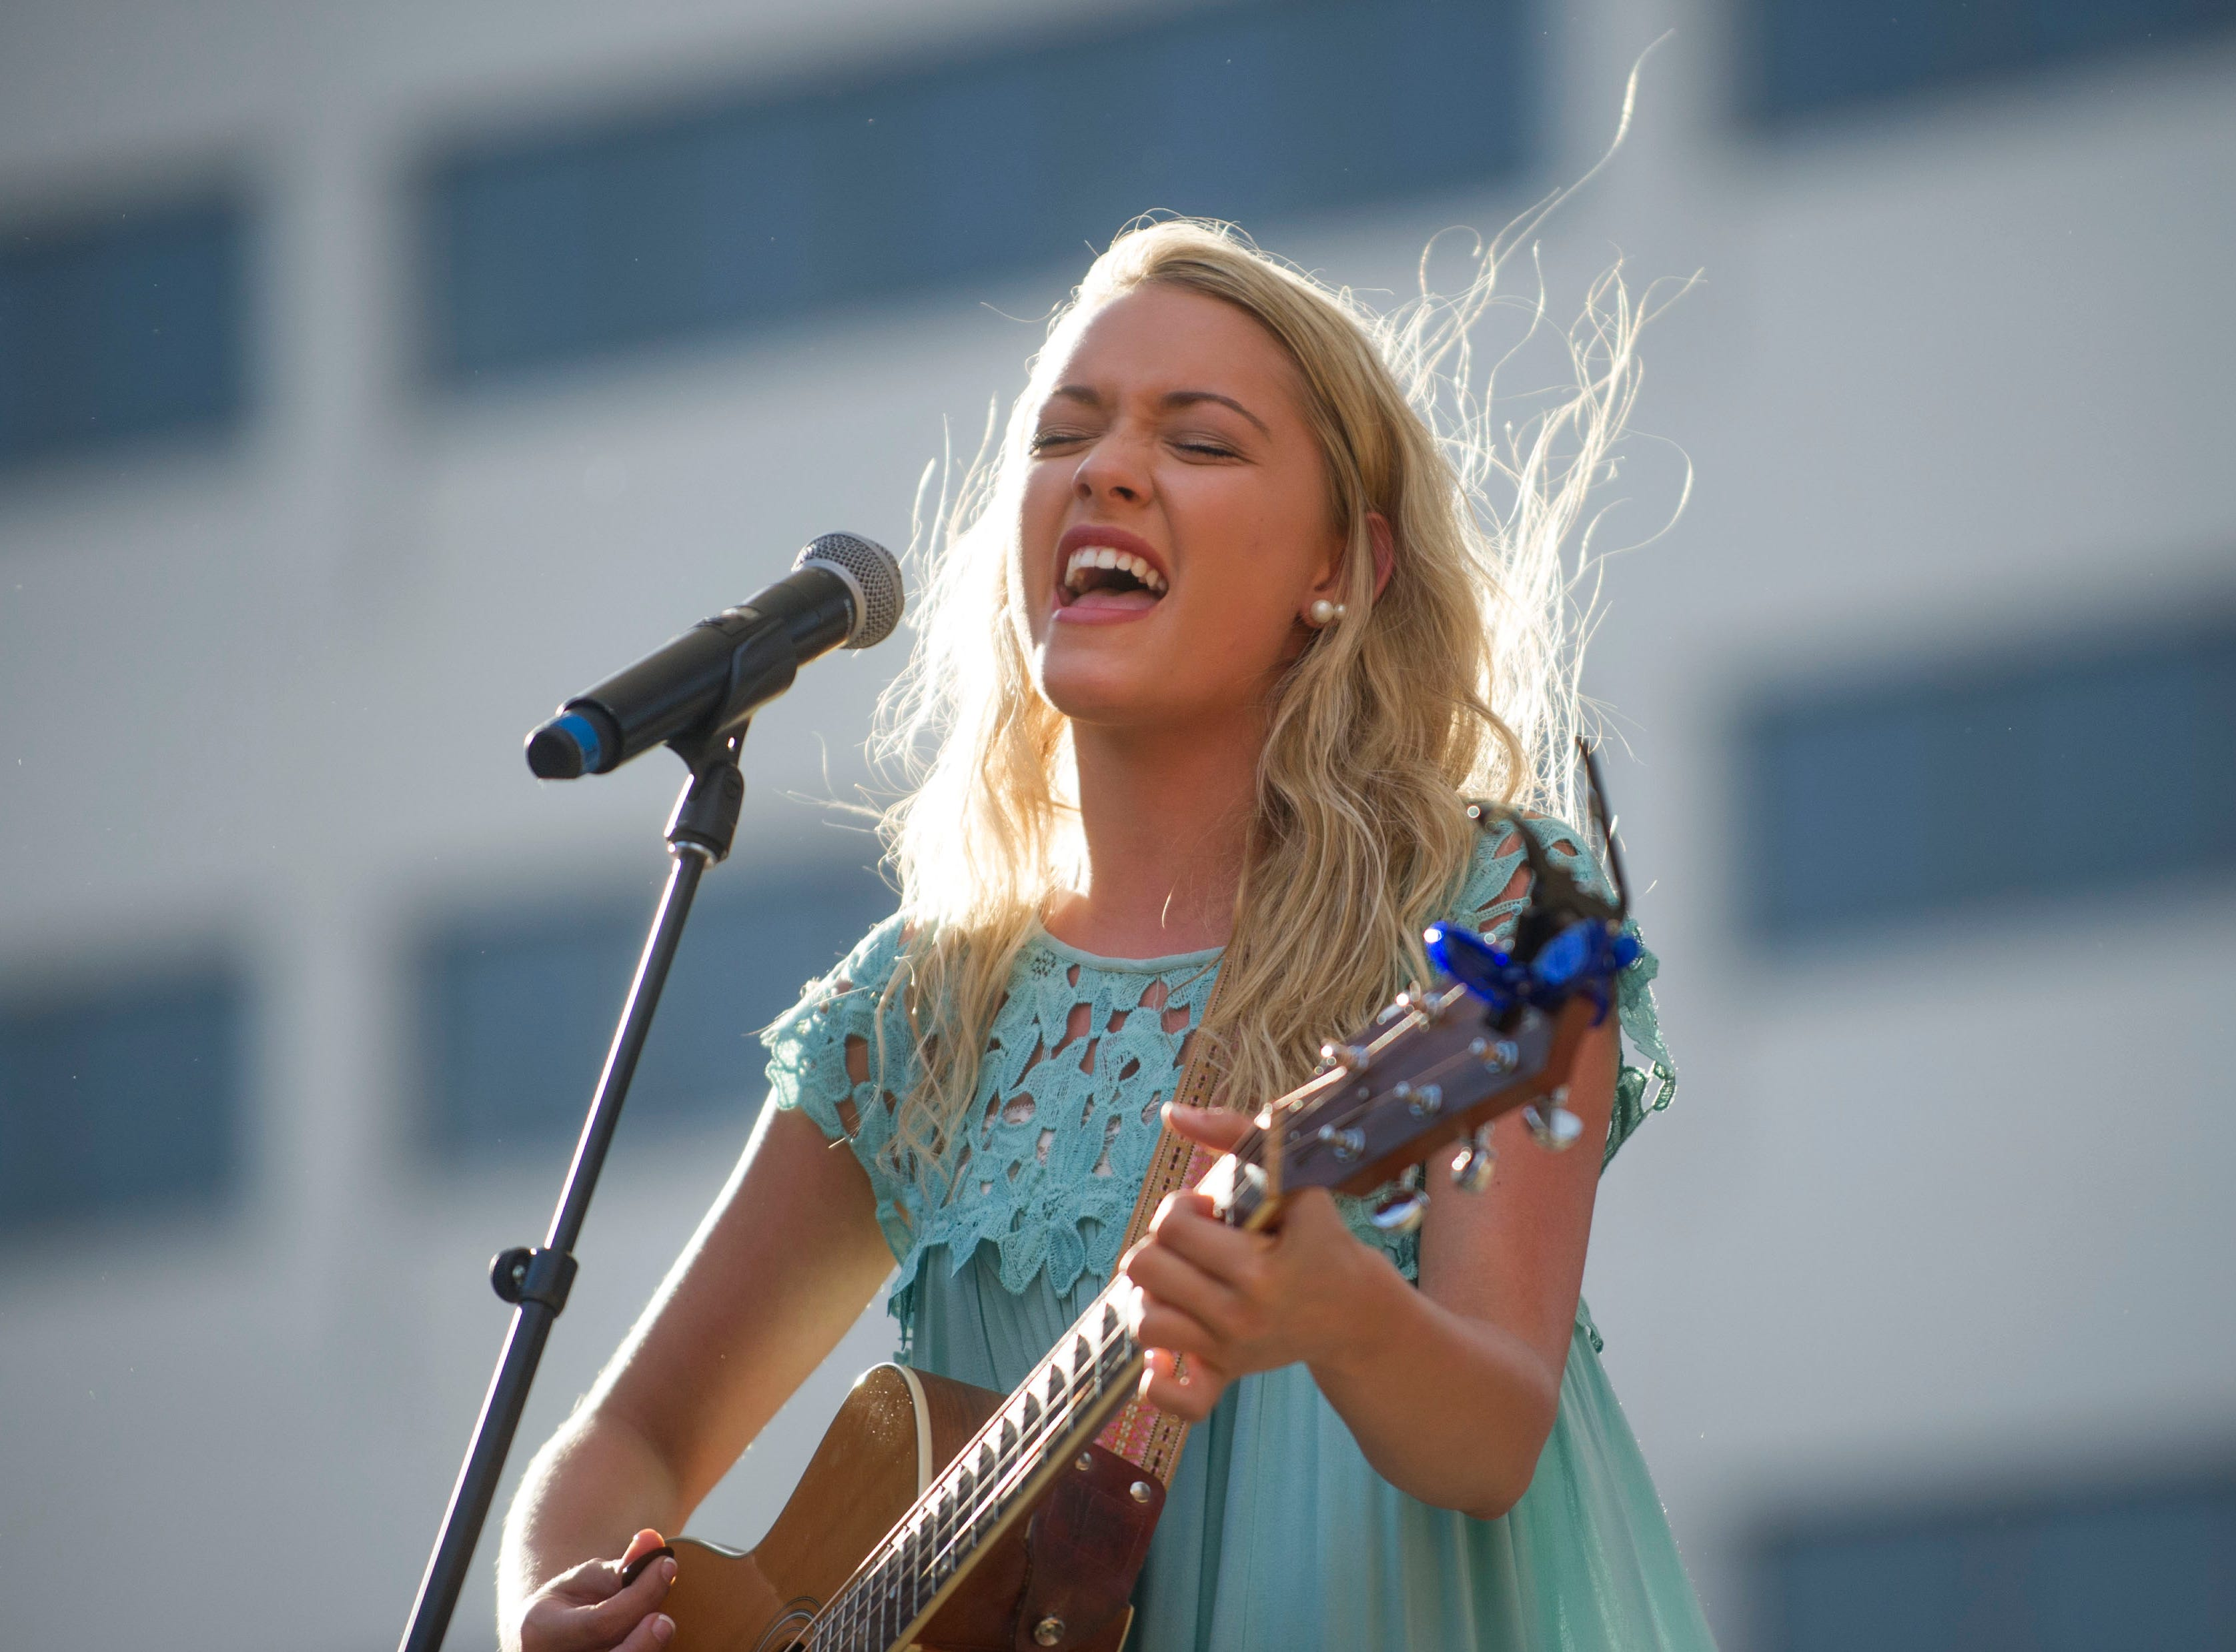 Emily Ann Roberts, last year's CTE Goes Live winner, opens with a performance before the 2016 show in Market Square on Friday, May 6, 2016.